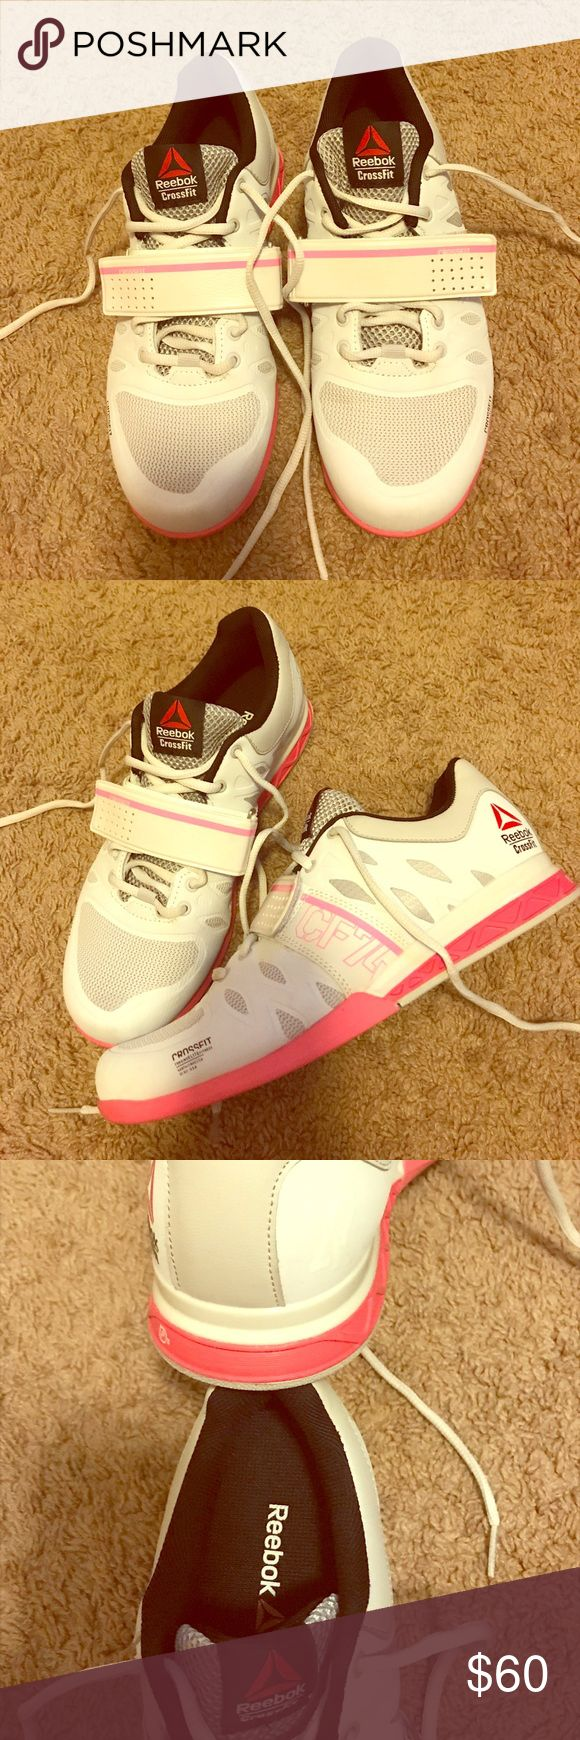 Reebok crossfit sz 9 lifting shoe white pink White pink Reebok Crossfit lifting shoes. Size 9. In very good condition, worn 3 times, then couldn't wear them anymore due to an injury. This is why I am selling them I won't be able to wear them anymore. I really liked these they aren't too clunky like some other lifting shoes. They are light and not stiff, give your foot stability and you feel grounded but you can still run in them if needed. Run true to size. With velcro strap for additional…